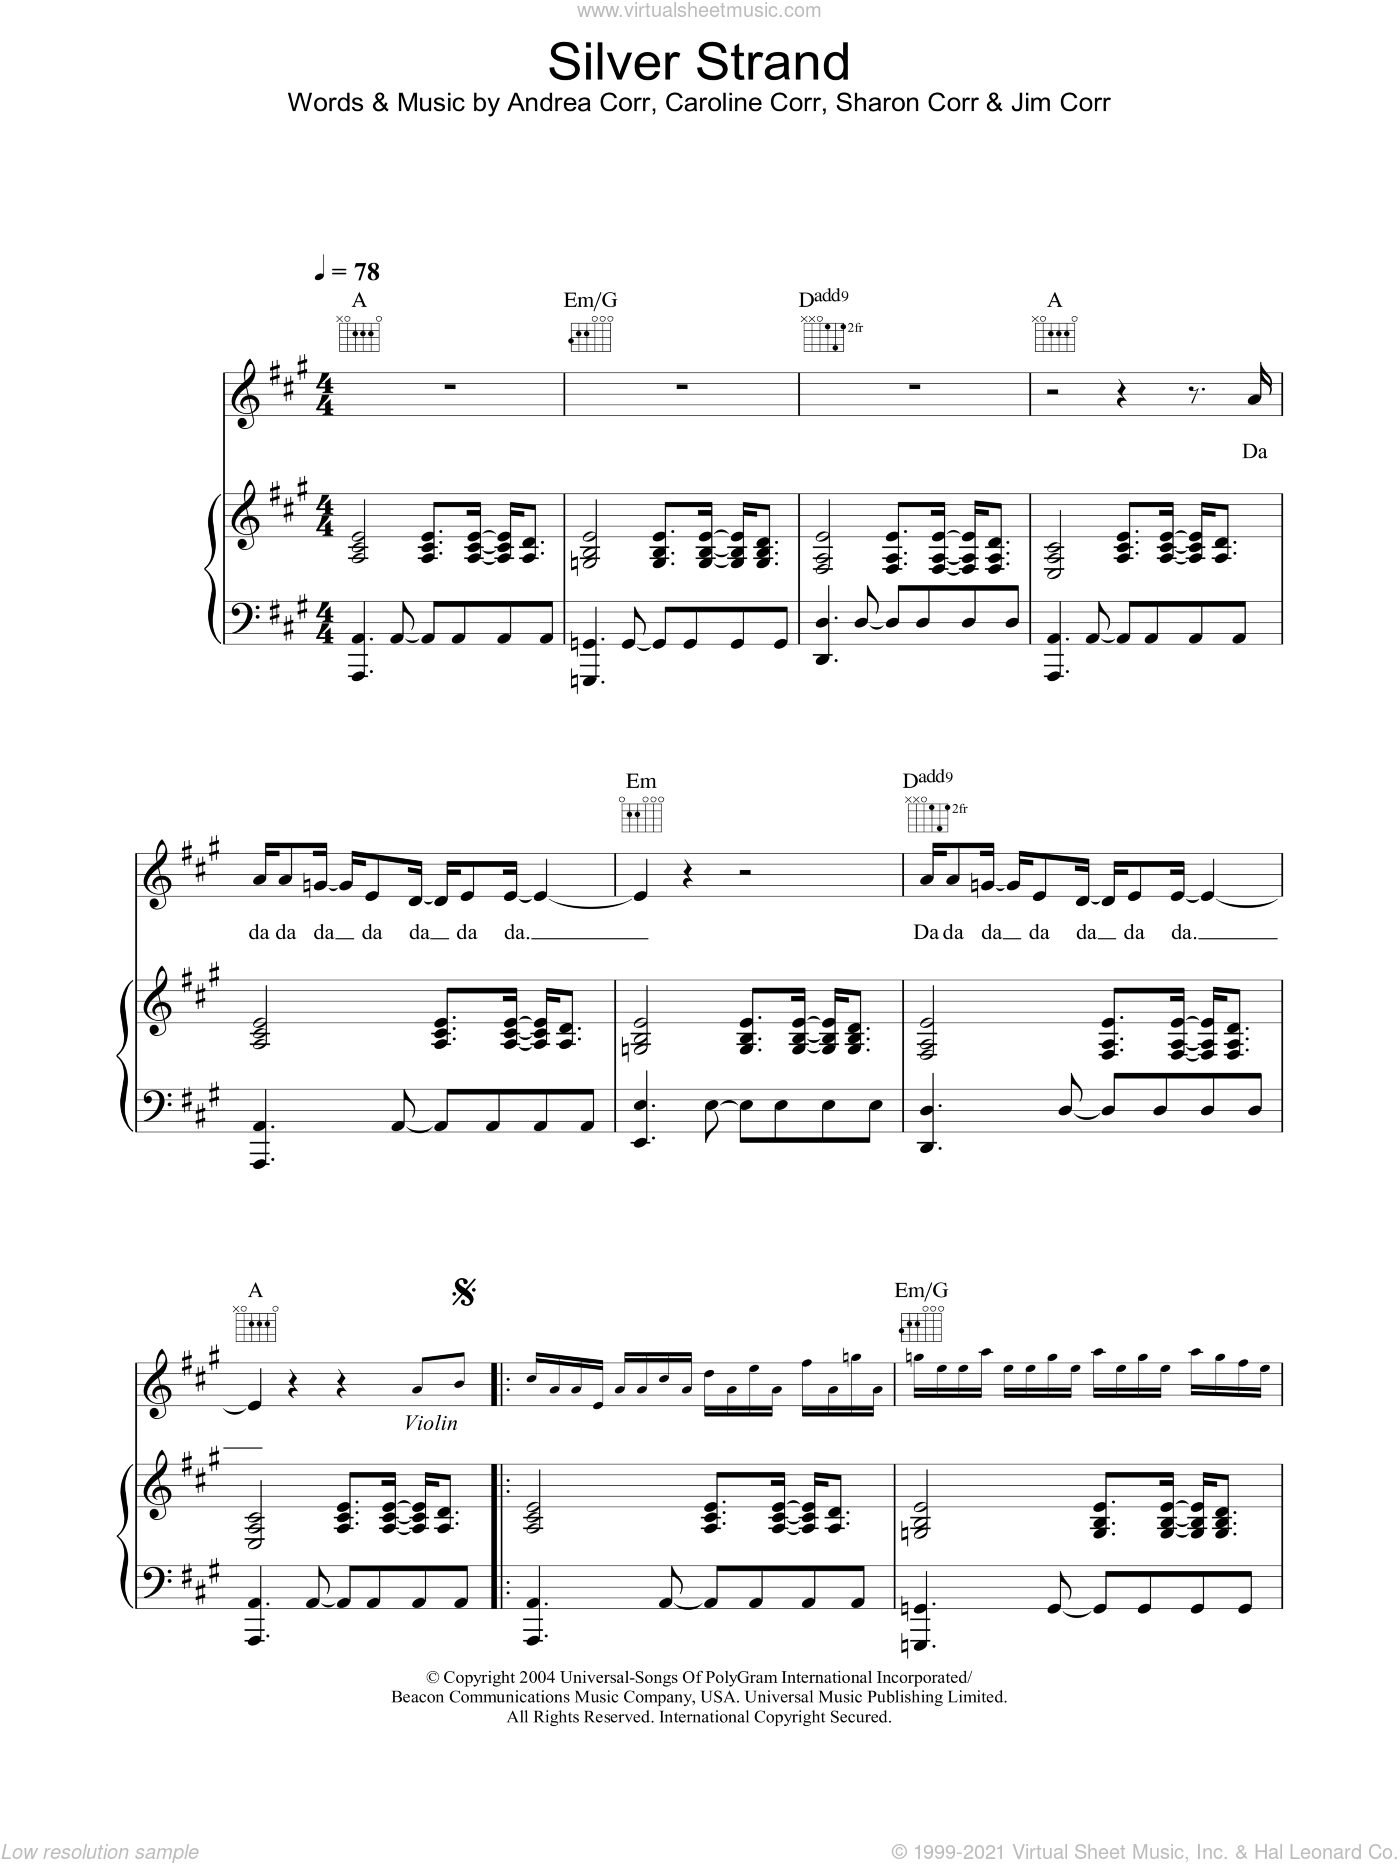 Silver Strand sheet music for voice, piano or guitar by Sharon Corr